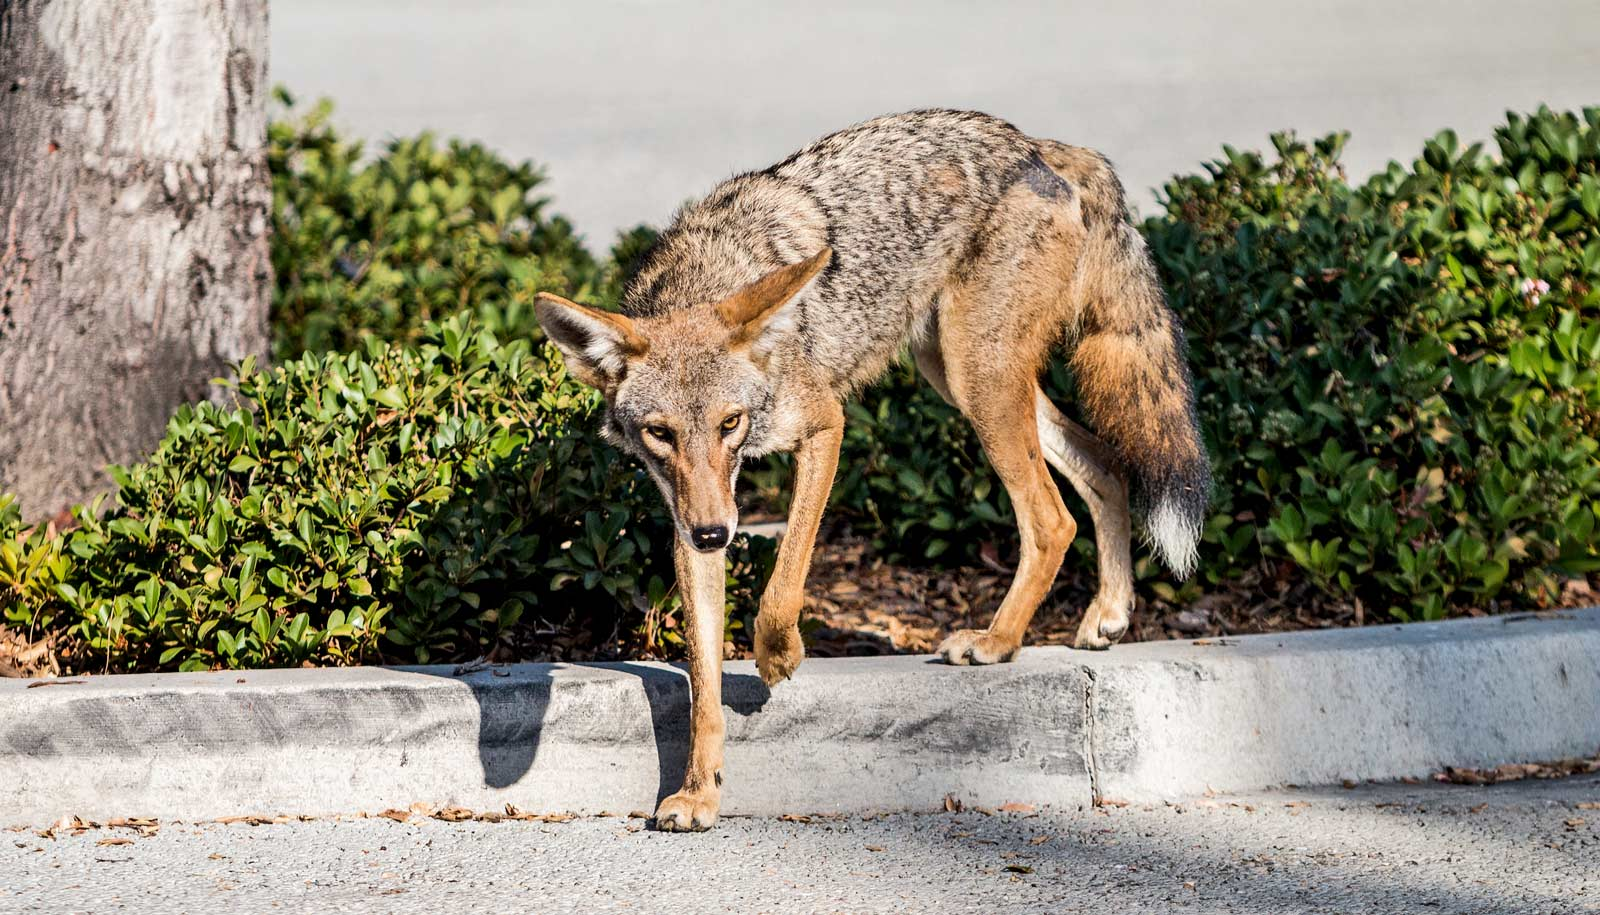 urban coyote stepping off concrete barrier